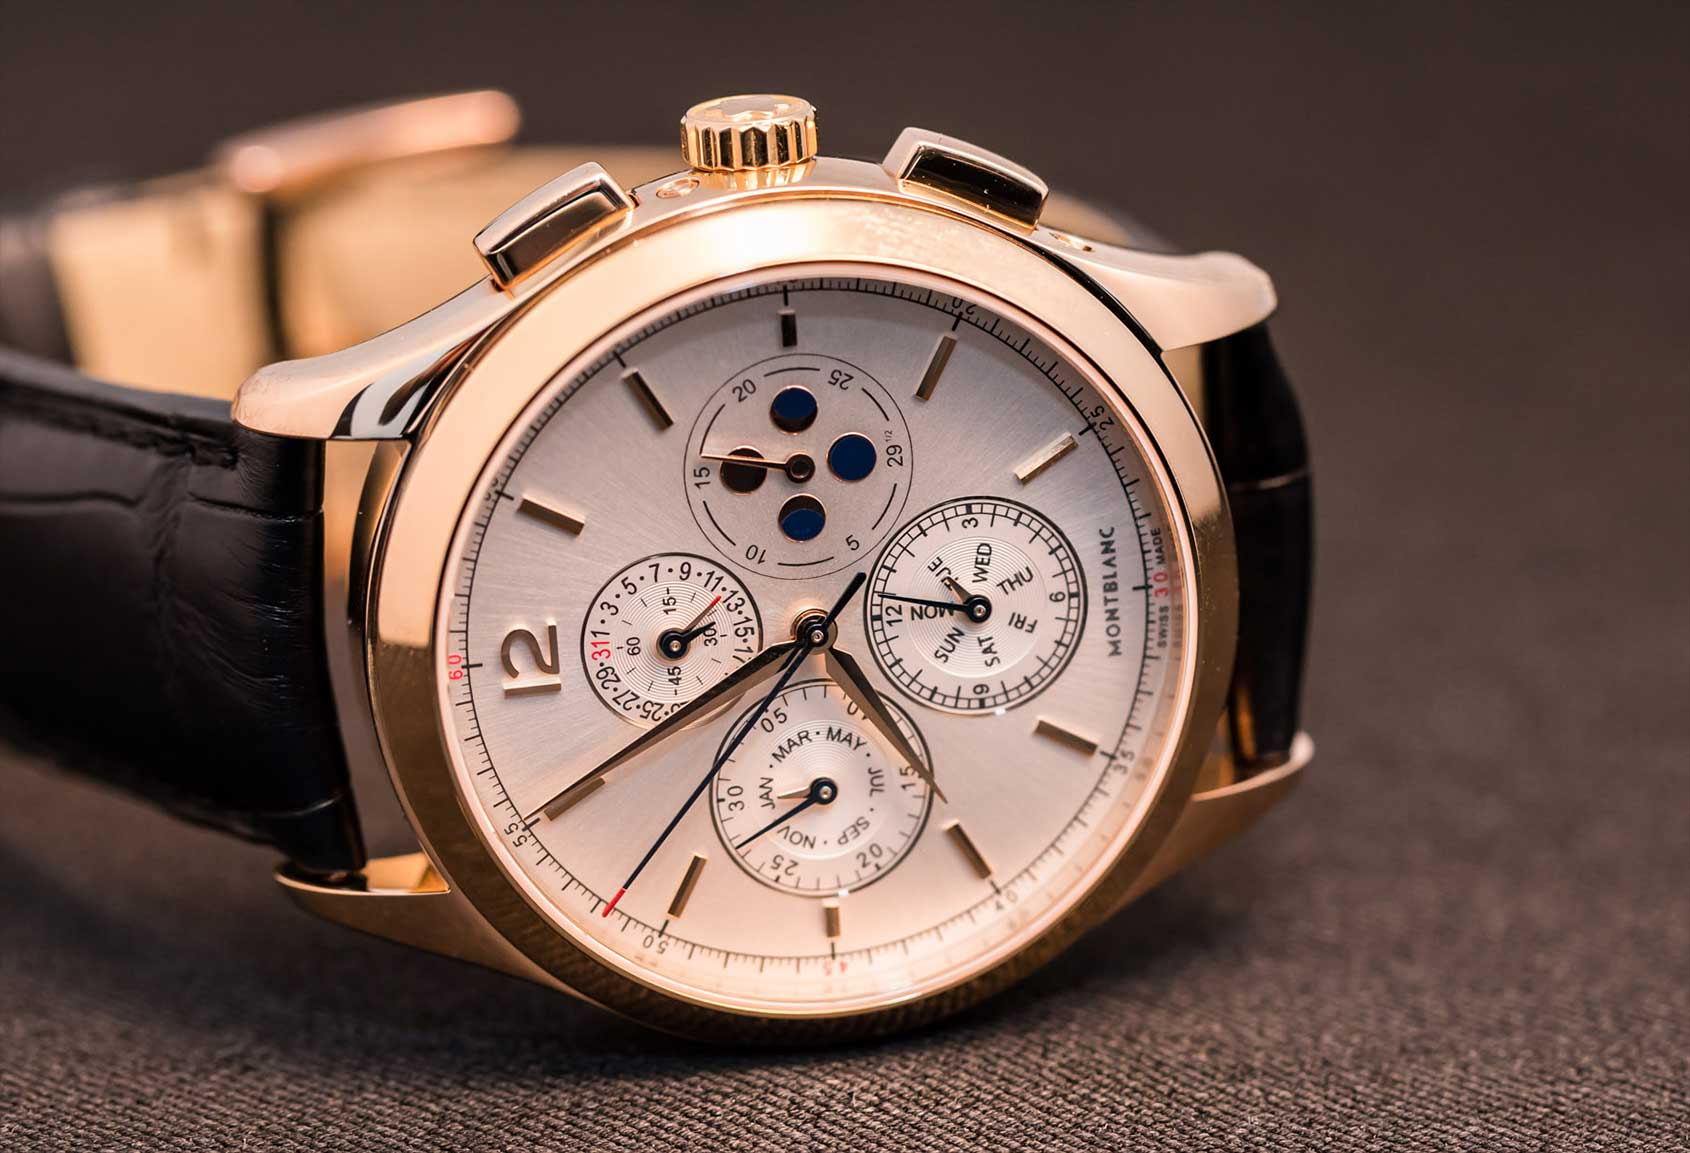 Montblanc heritage chronometrie chronograph annual calendar video review for Calendar watches